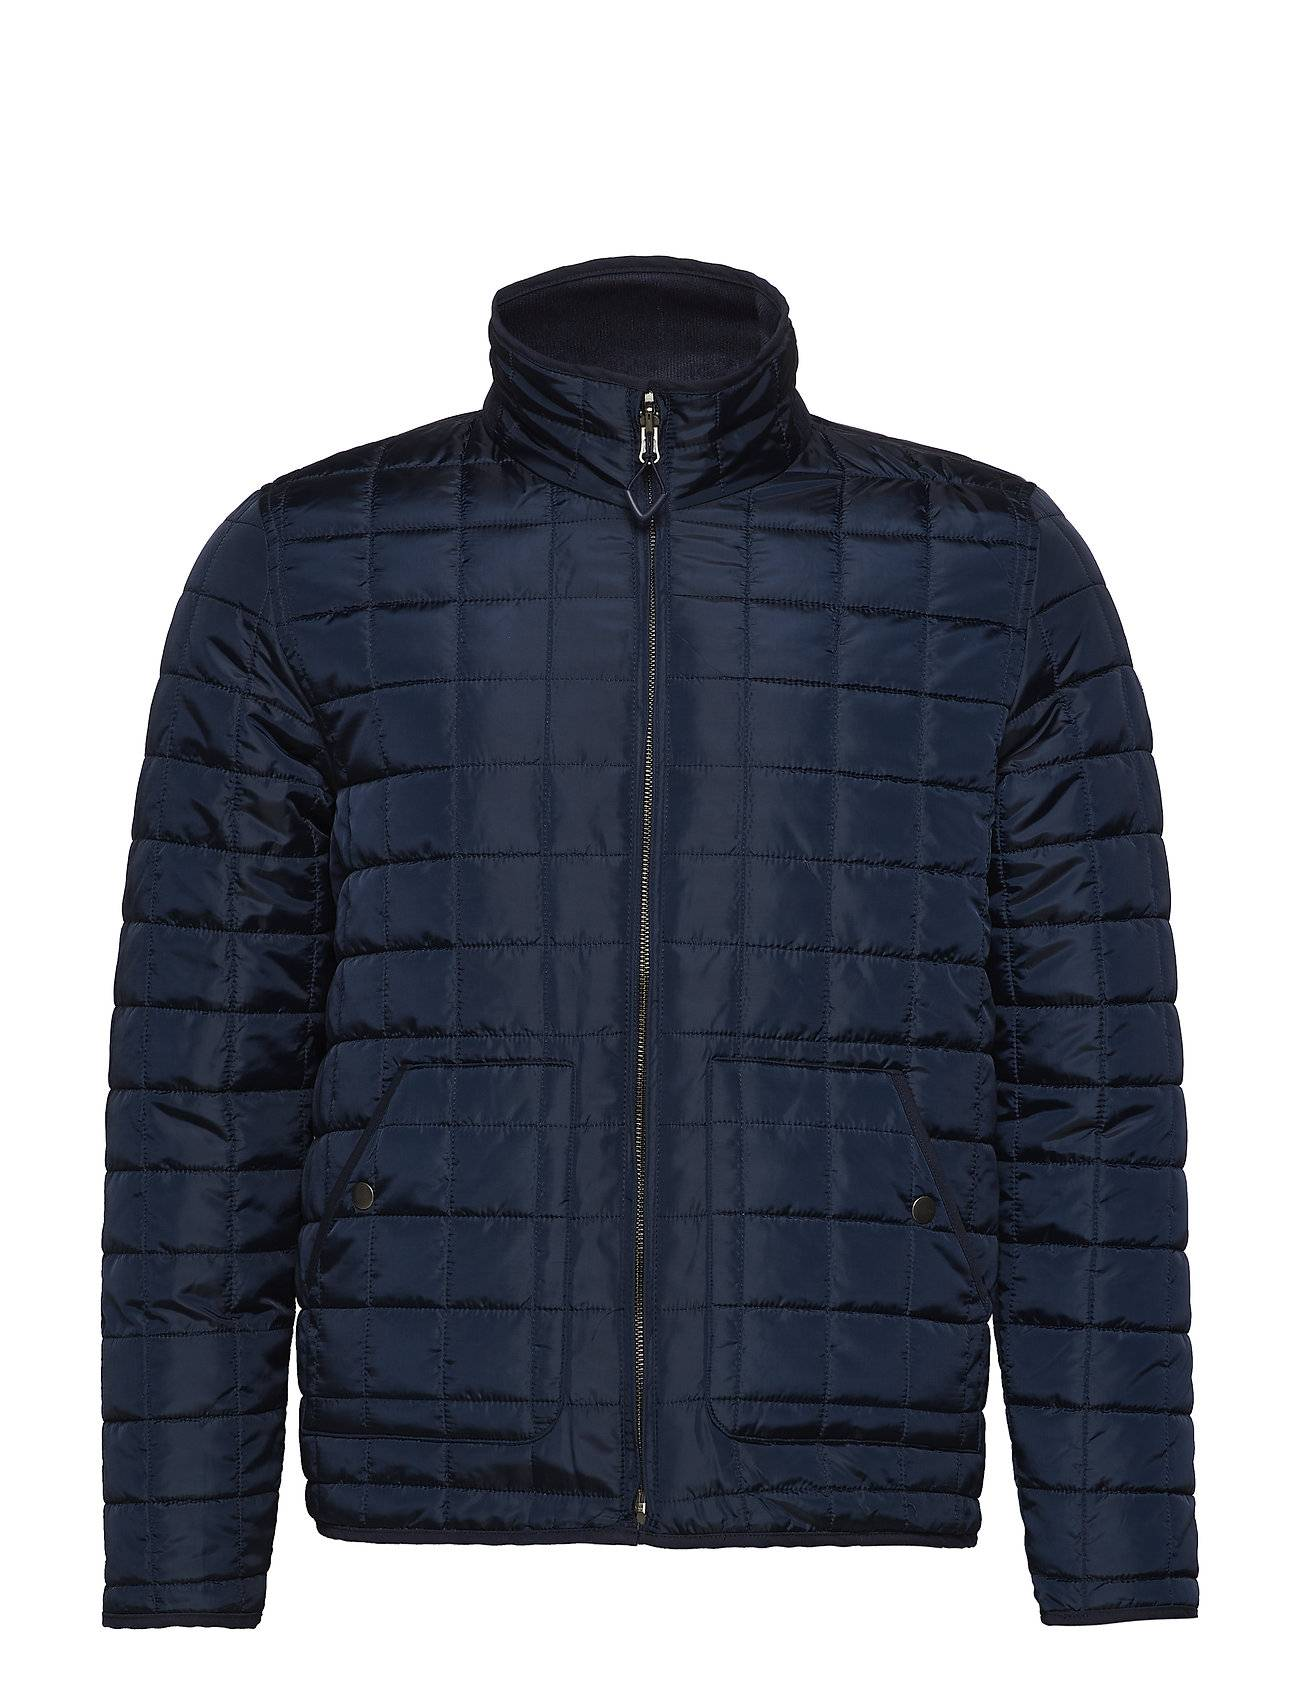 Knowledge Cotton Apparel Reversible Quilted Jacket - Grs/Veg